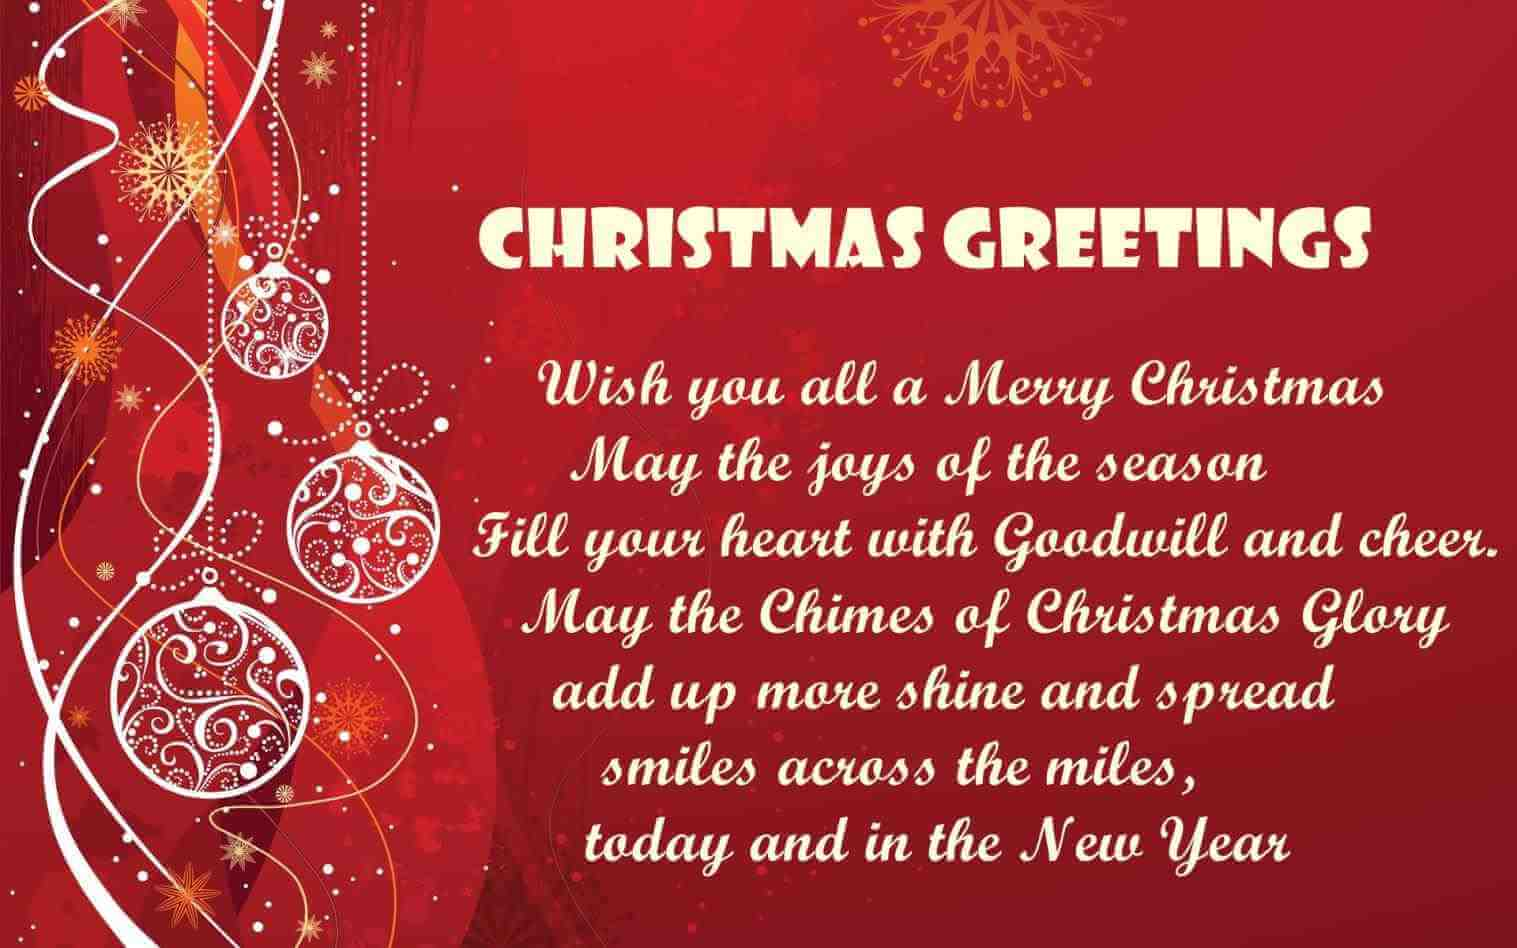 Christmas Merry wishes text pictures foto